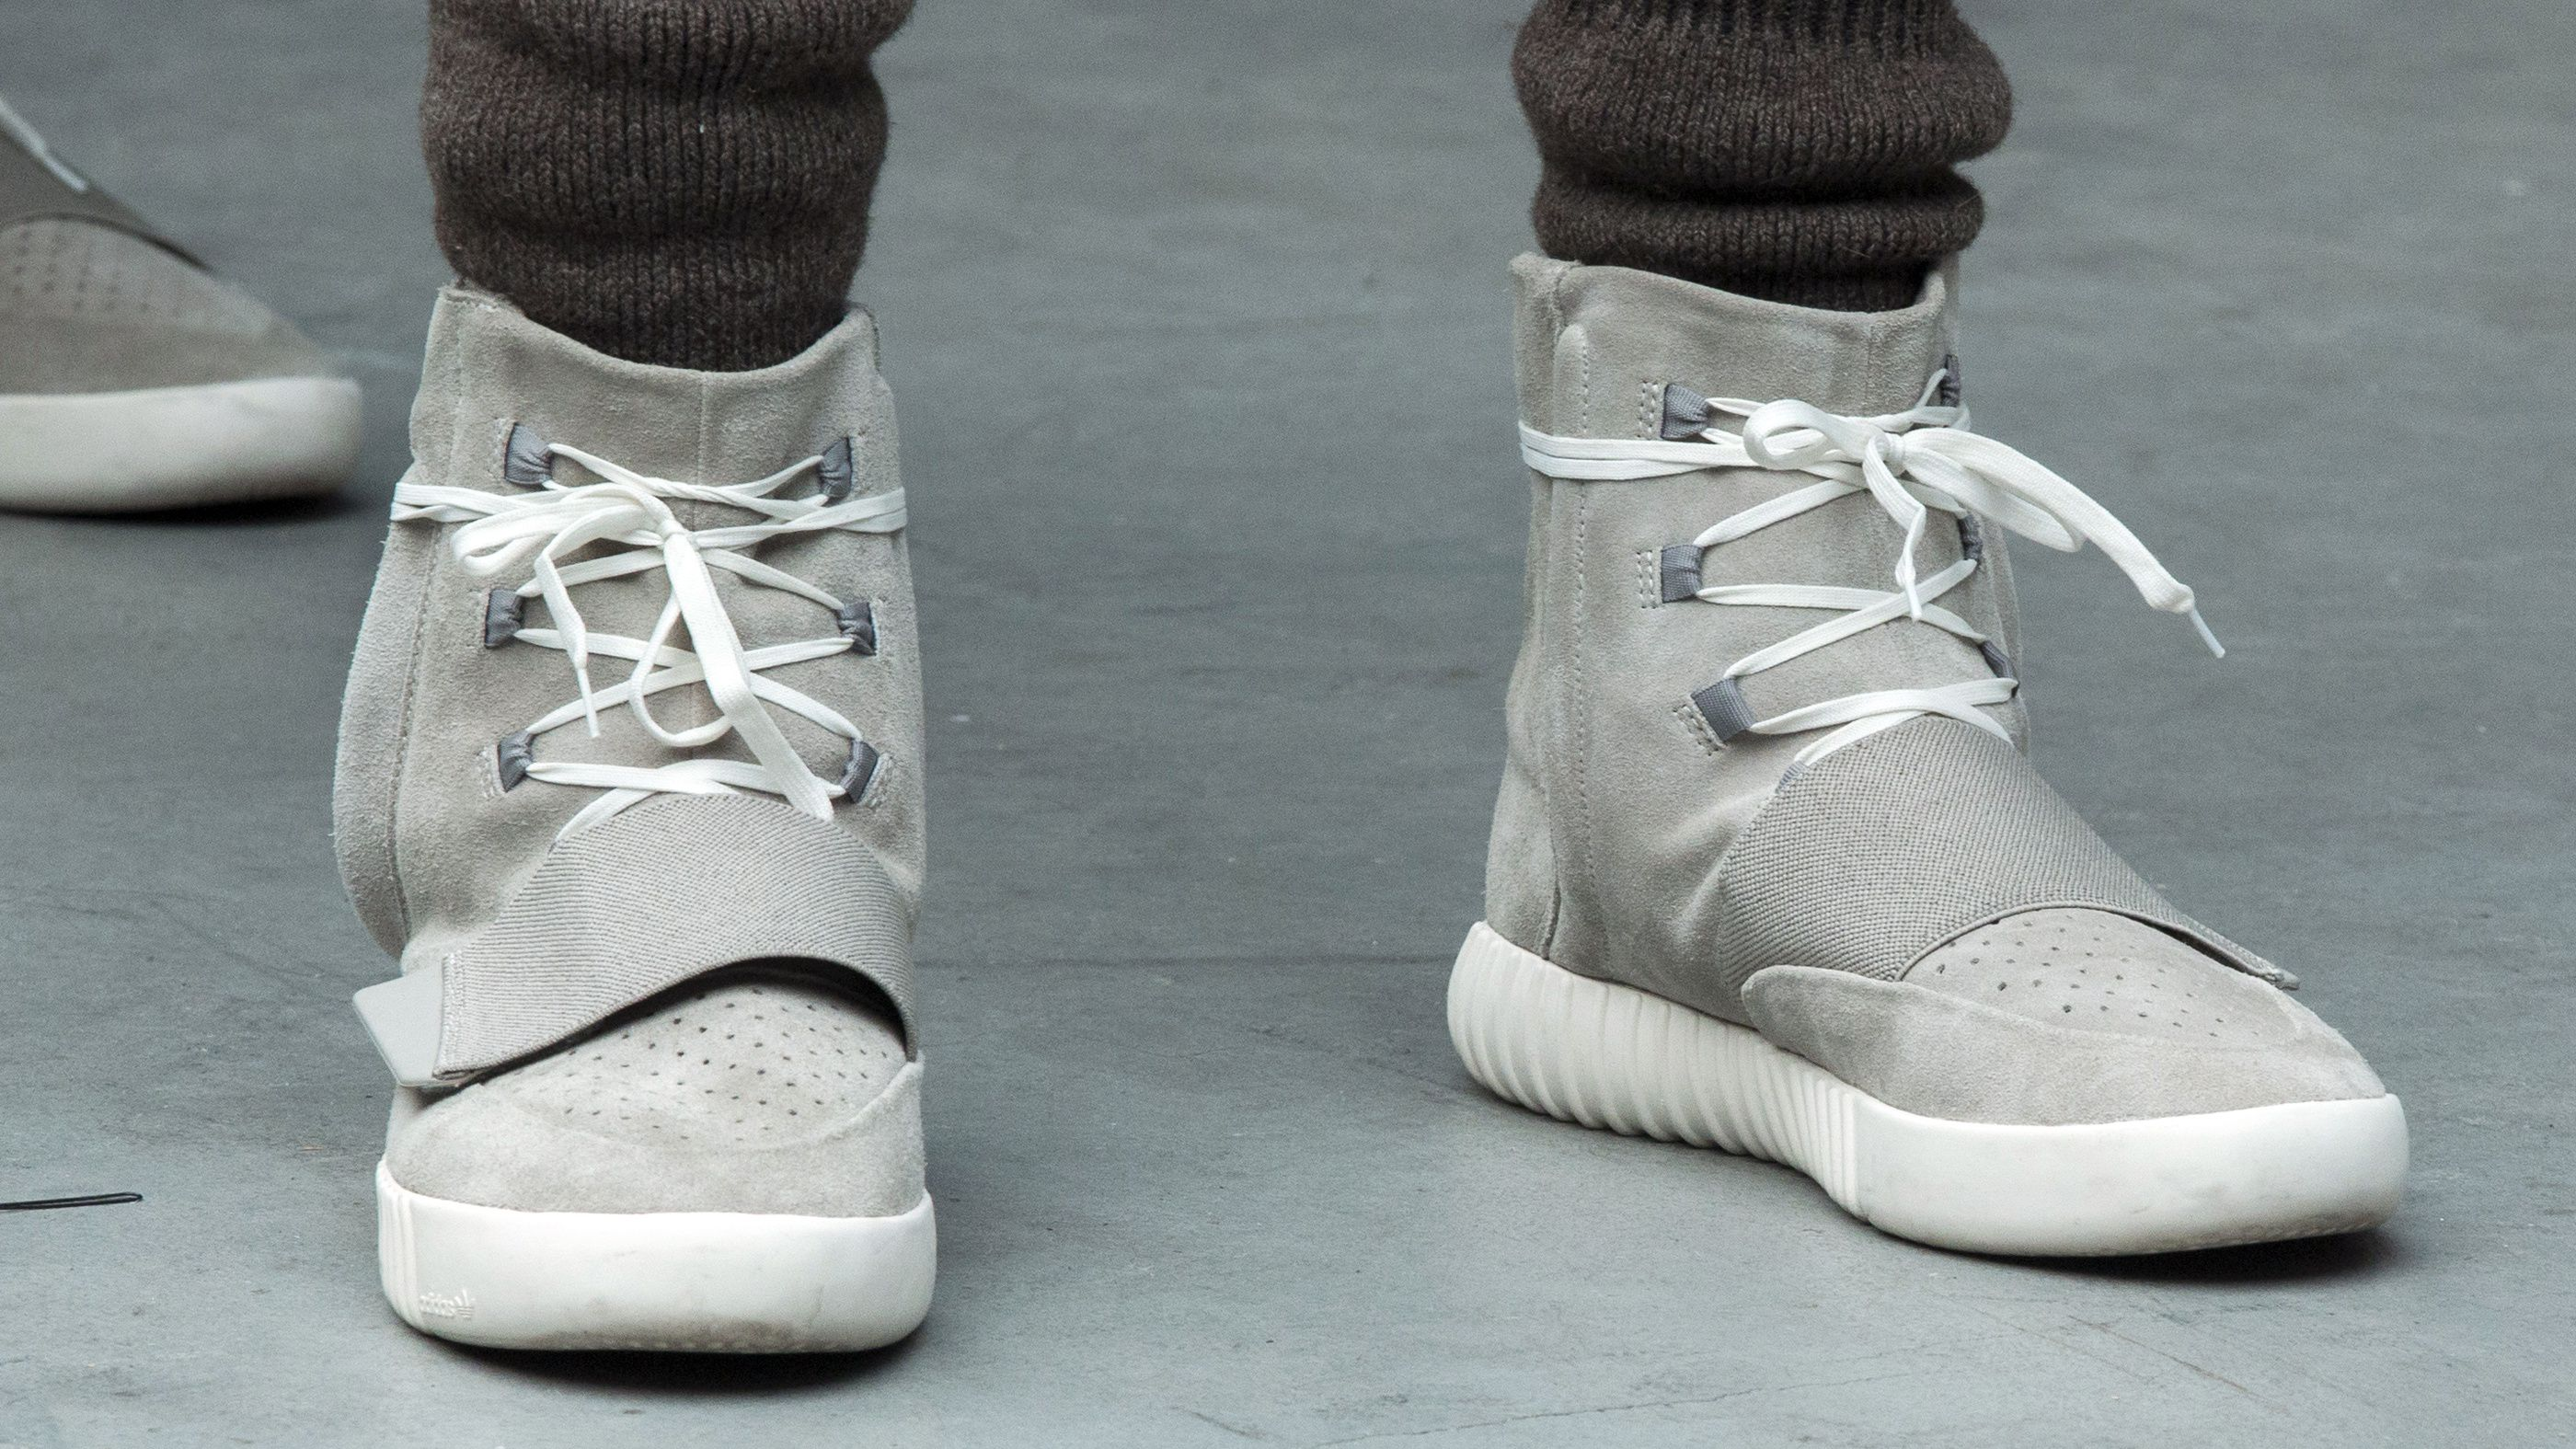 designer fashion e4931 d9f72 Kanye won't stop trash-talking Nike, but his new Adidas line ...